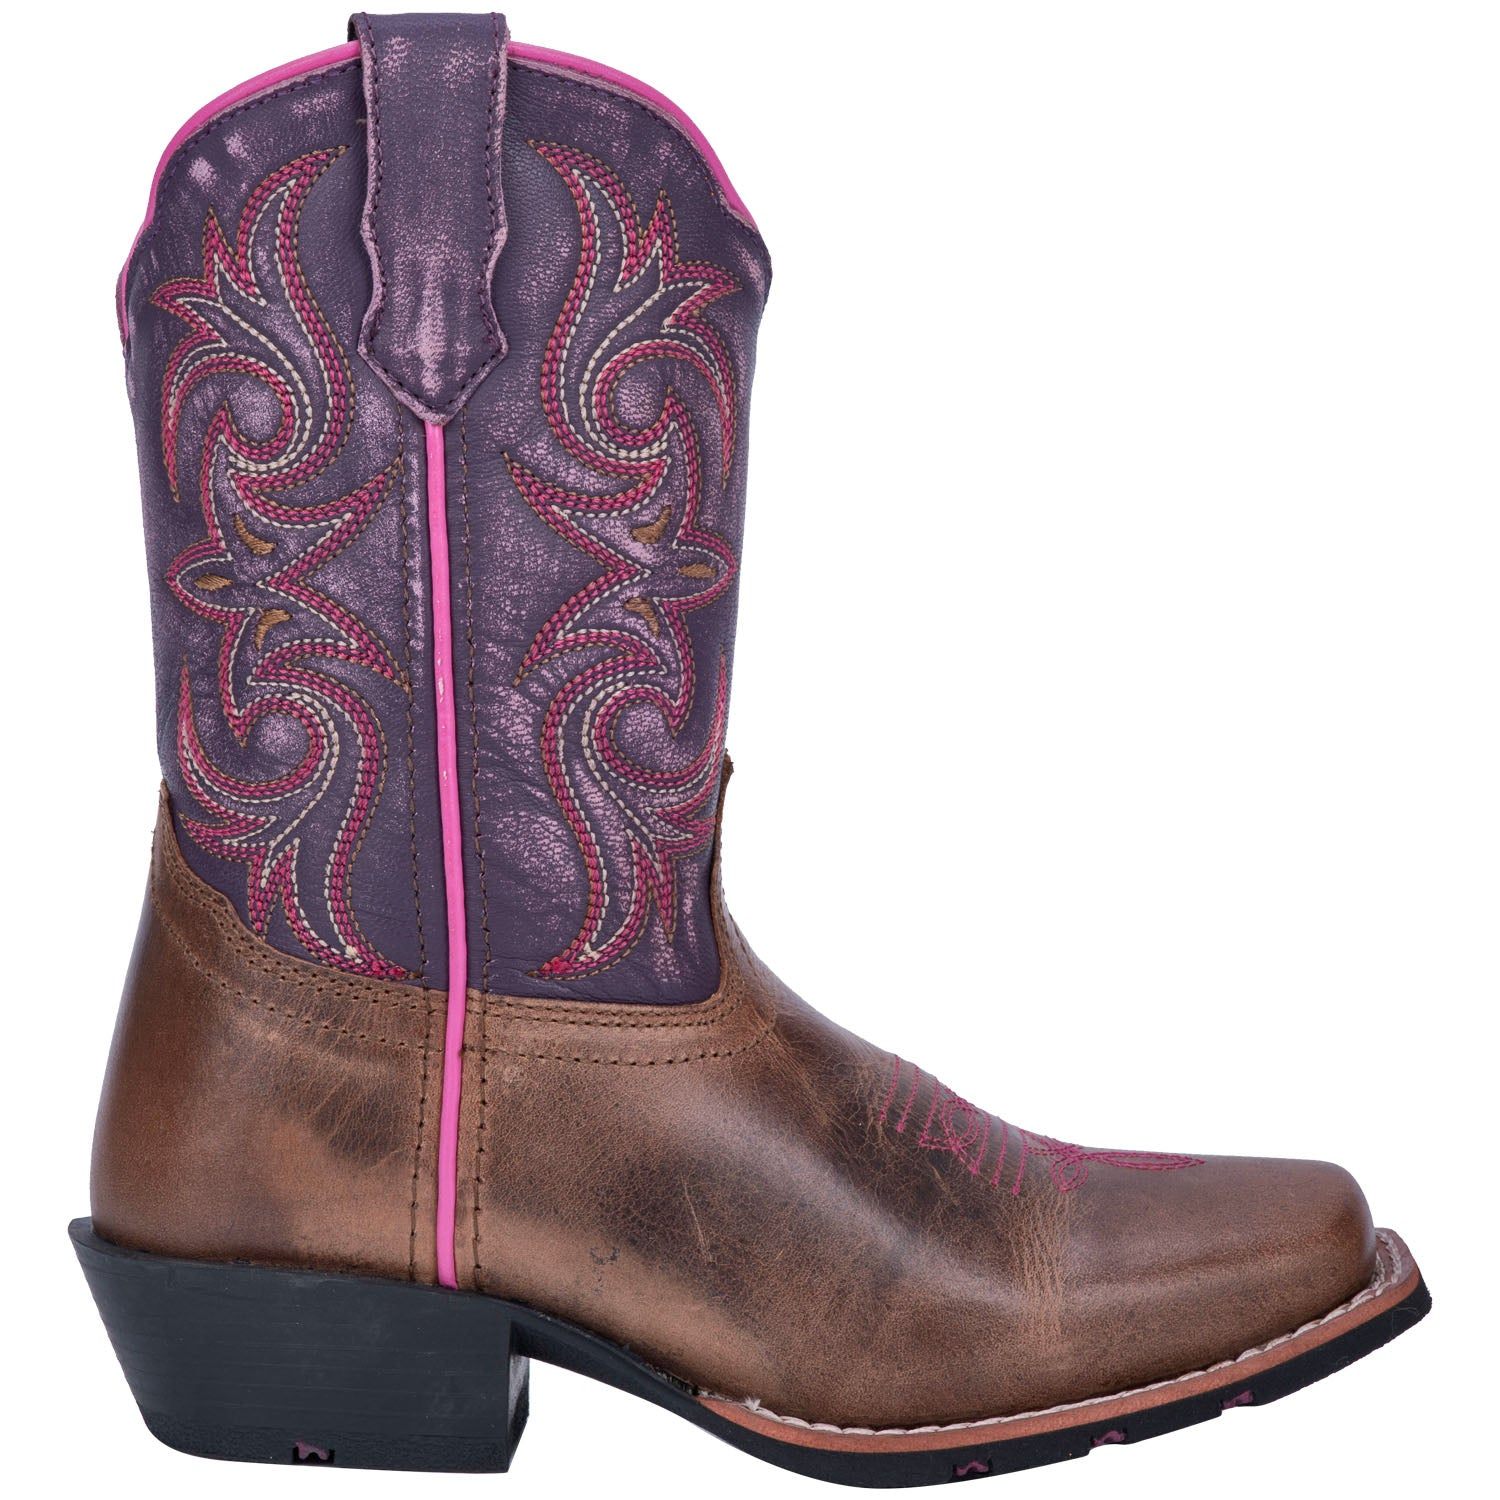 MAJESTY LEATHER CHILDREN'S BOOT 4253897097258